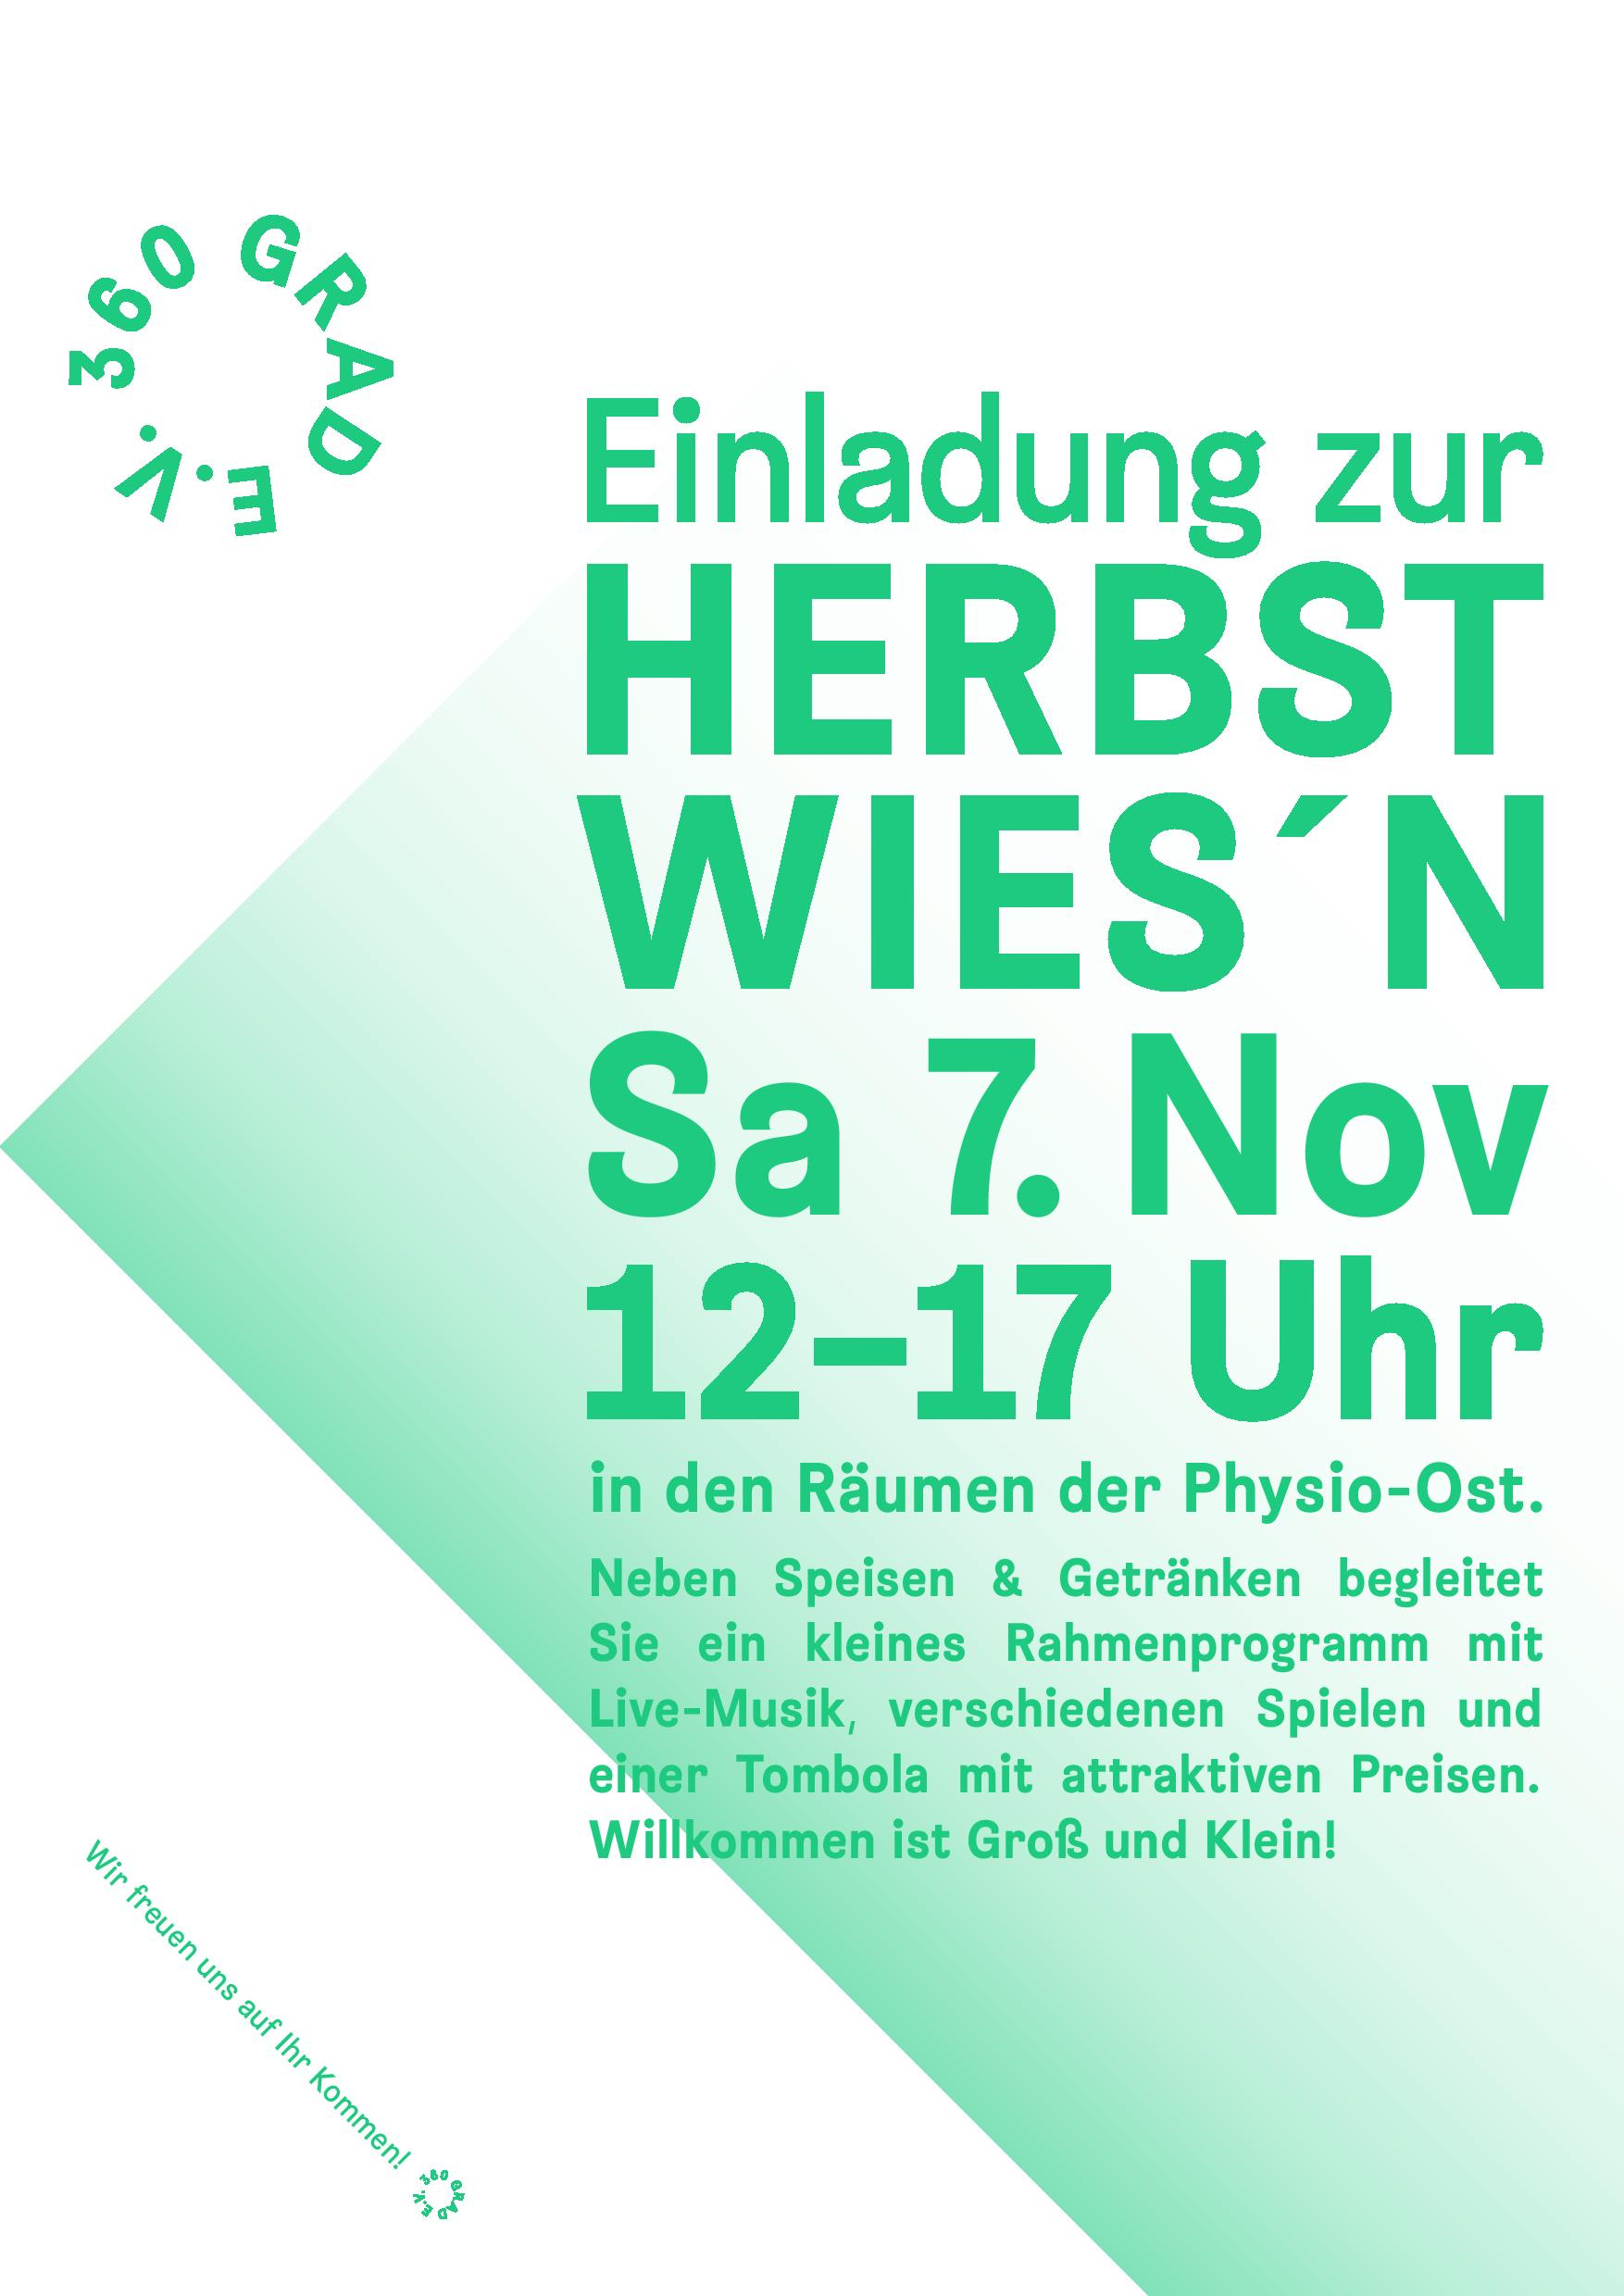 360°_Poster_Herbst_Wiesn_2-page-001